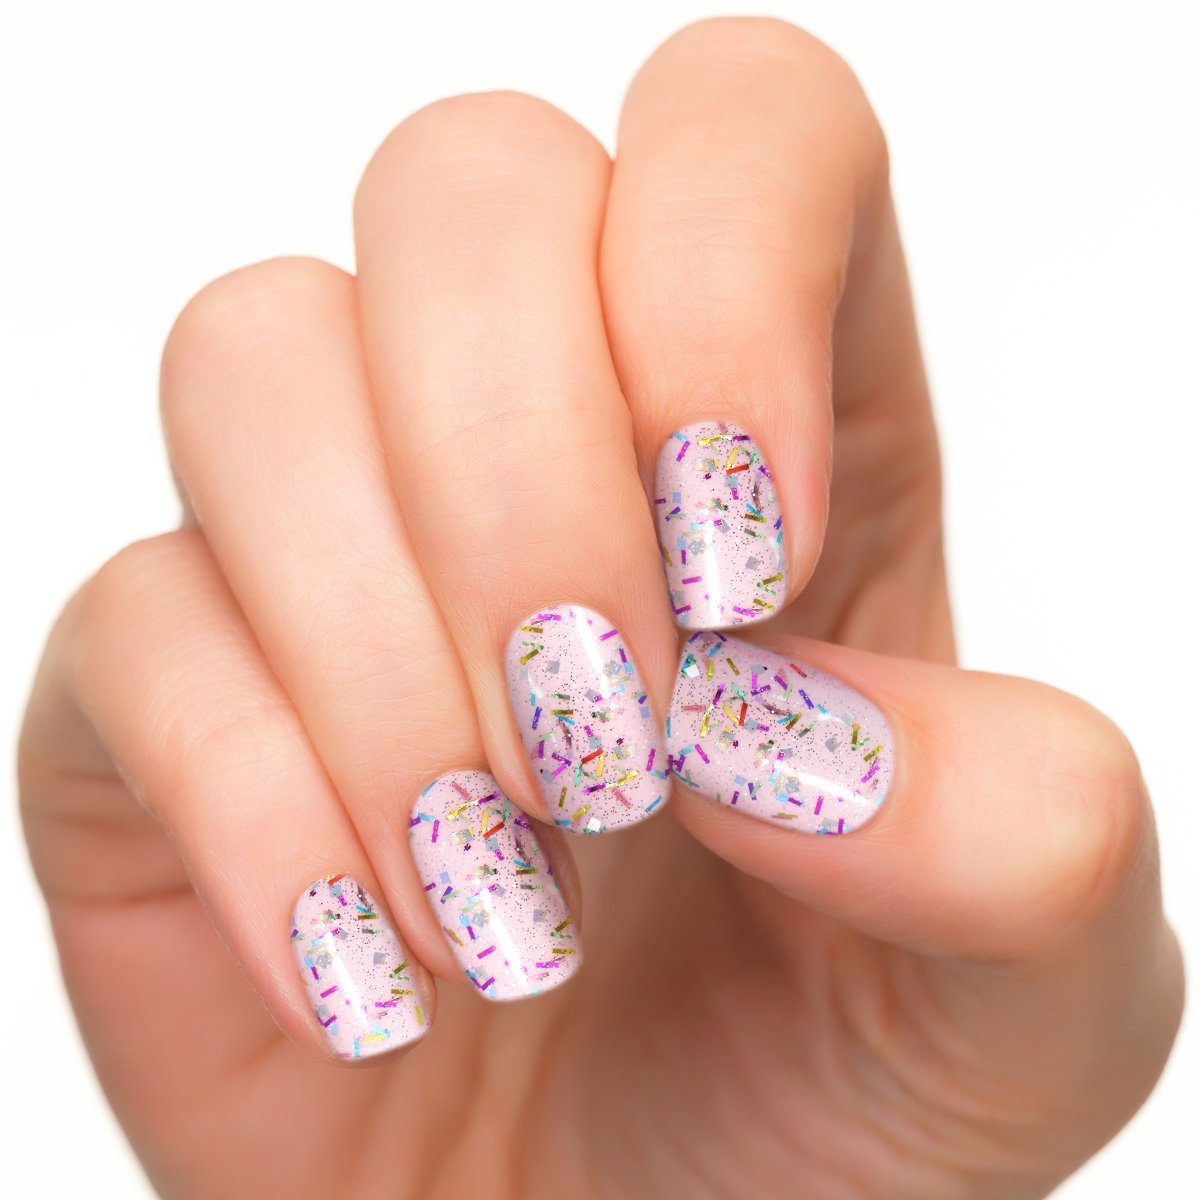 For nail polish strip can help